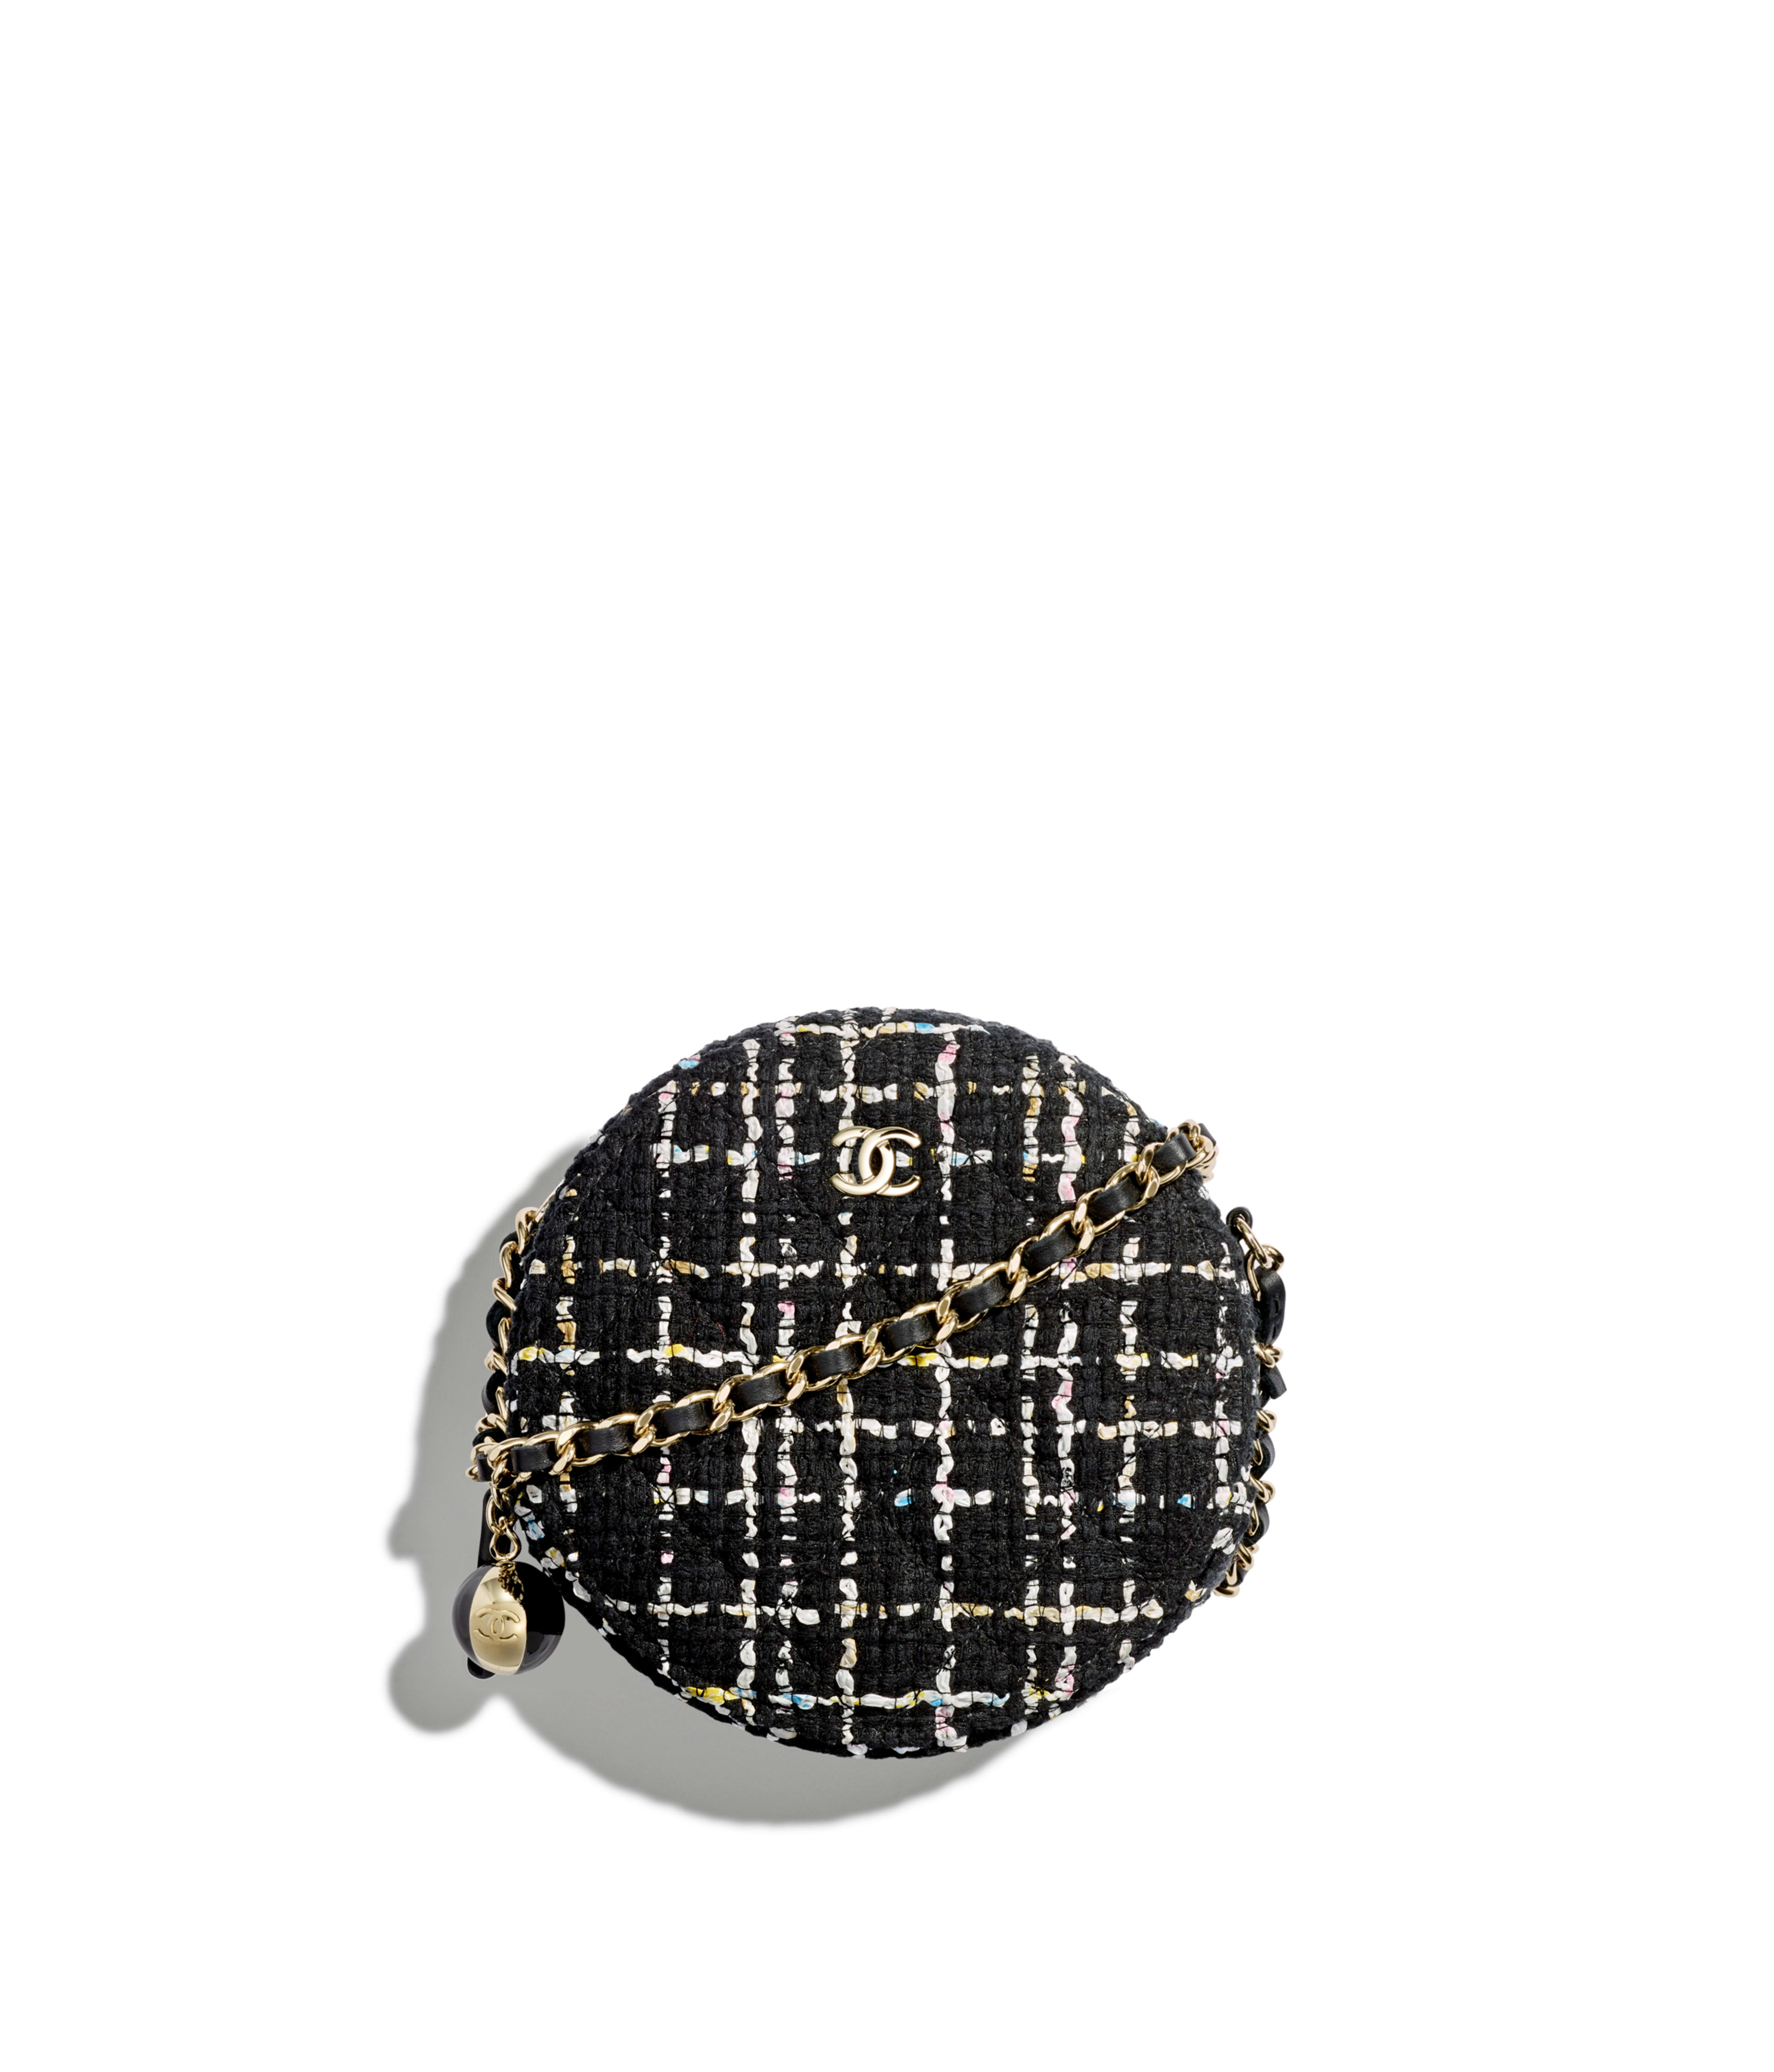 e1a8c7ade923 Chanel Caviar Quilted Cc Filigree Clutch With Chain Black - Best ...